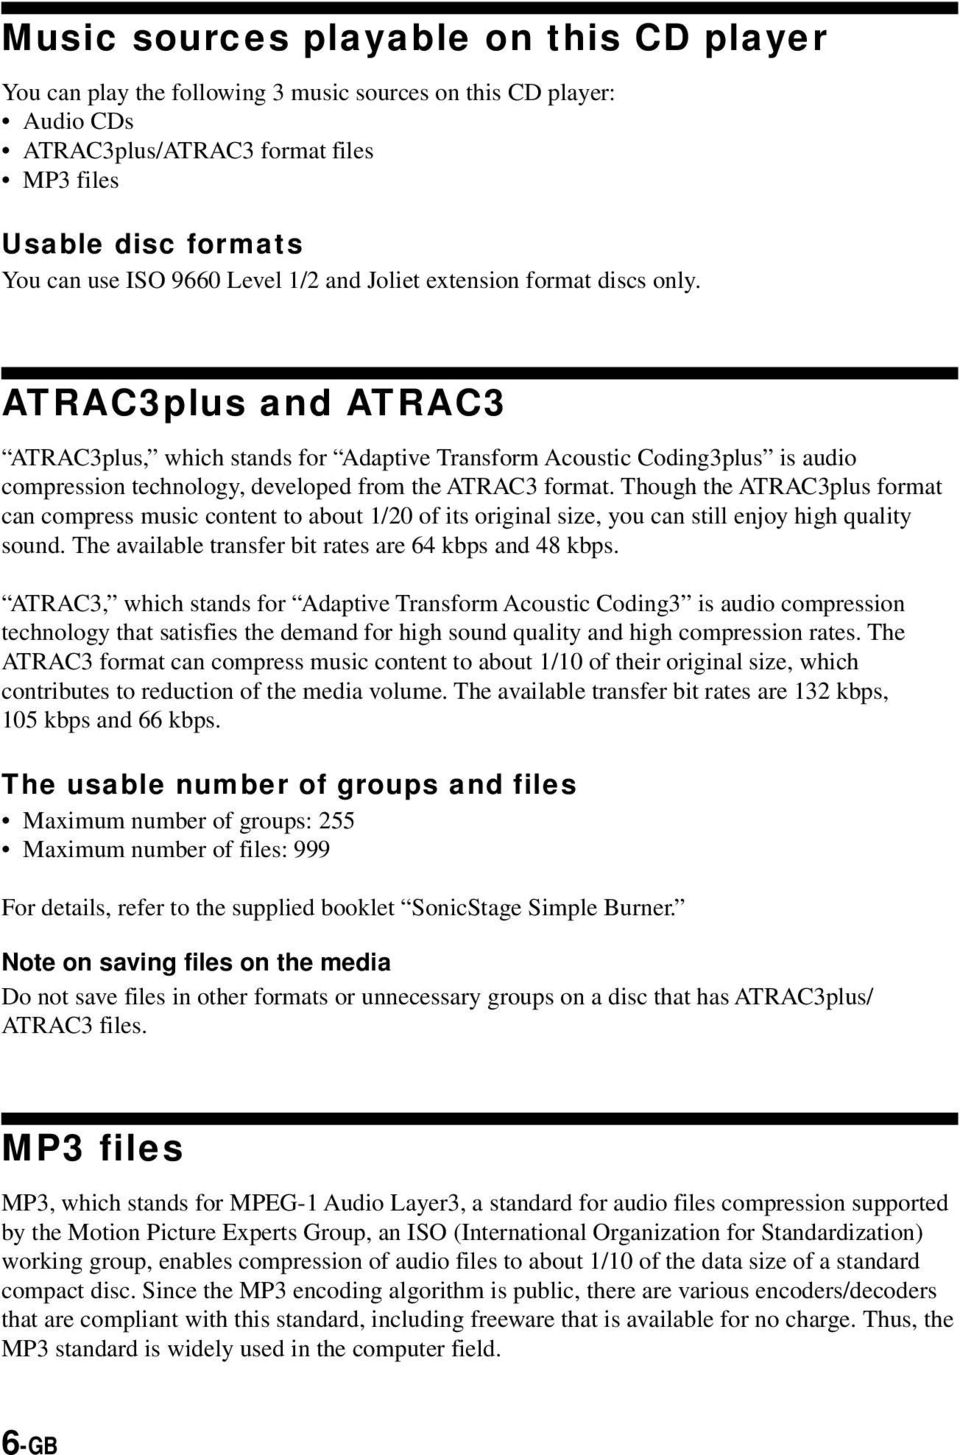 ATRAC3plus and ATRAC3 ATRAC3plus, which stands for Adaptive Transform Acoustic Coding3plus is audio compression technology, developed from the ATRAC3 format.